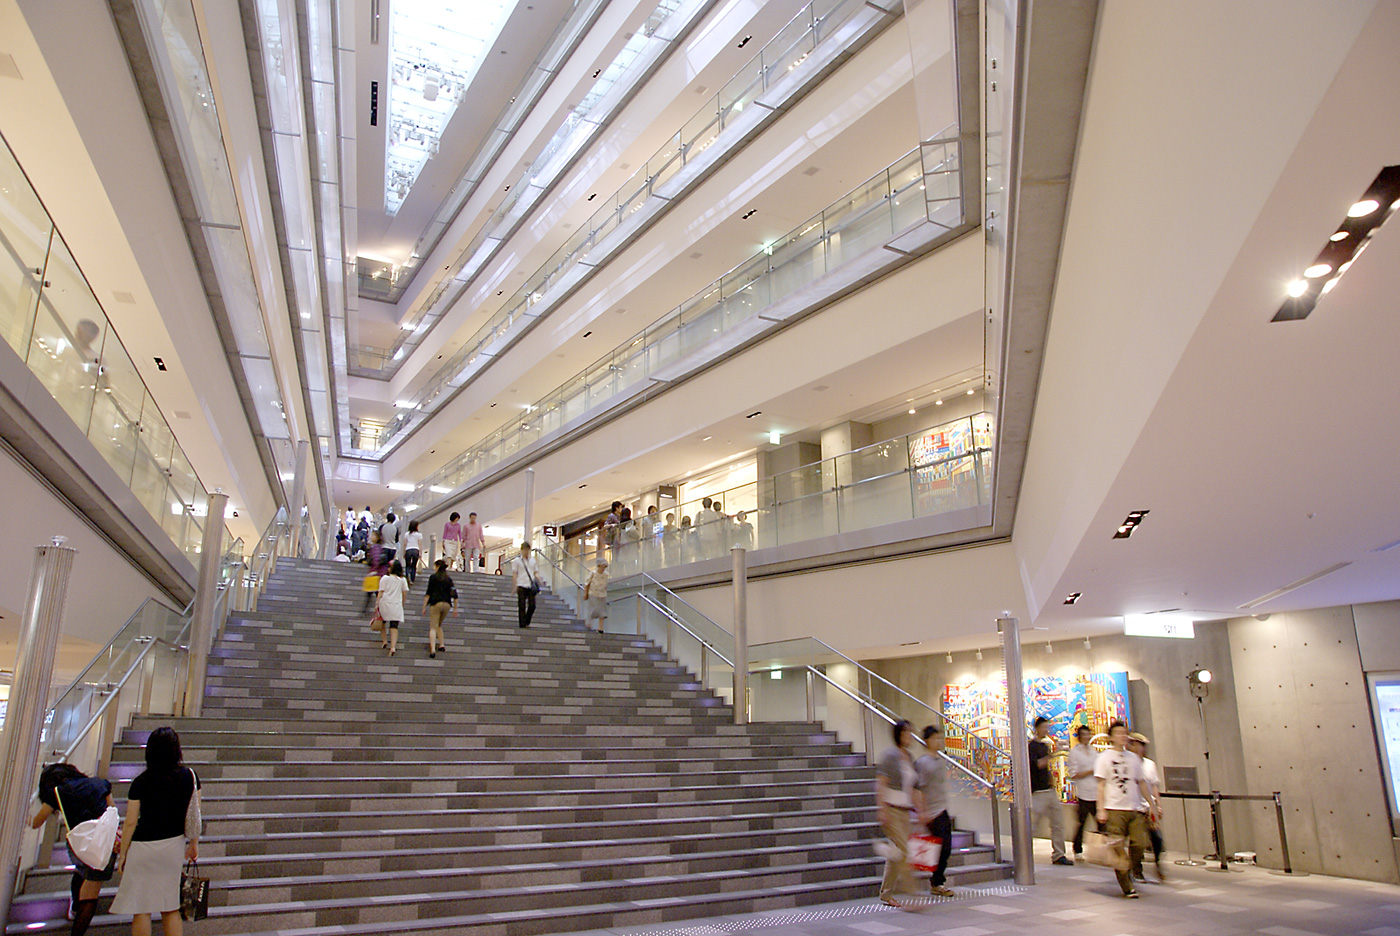 Admire Japan's architecture and who designed them